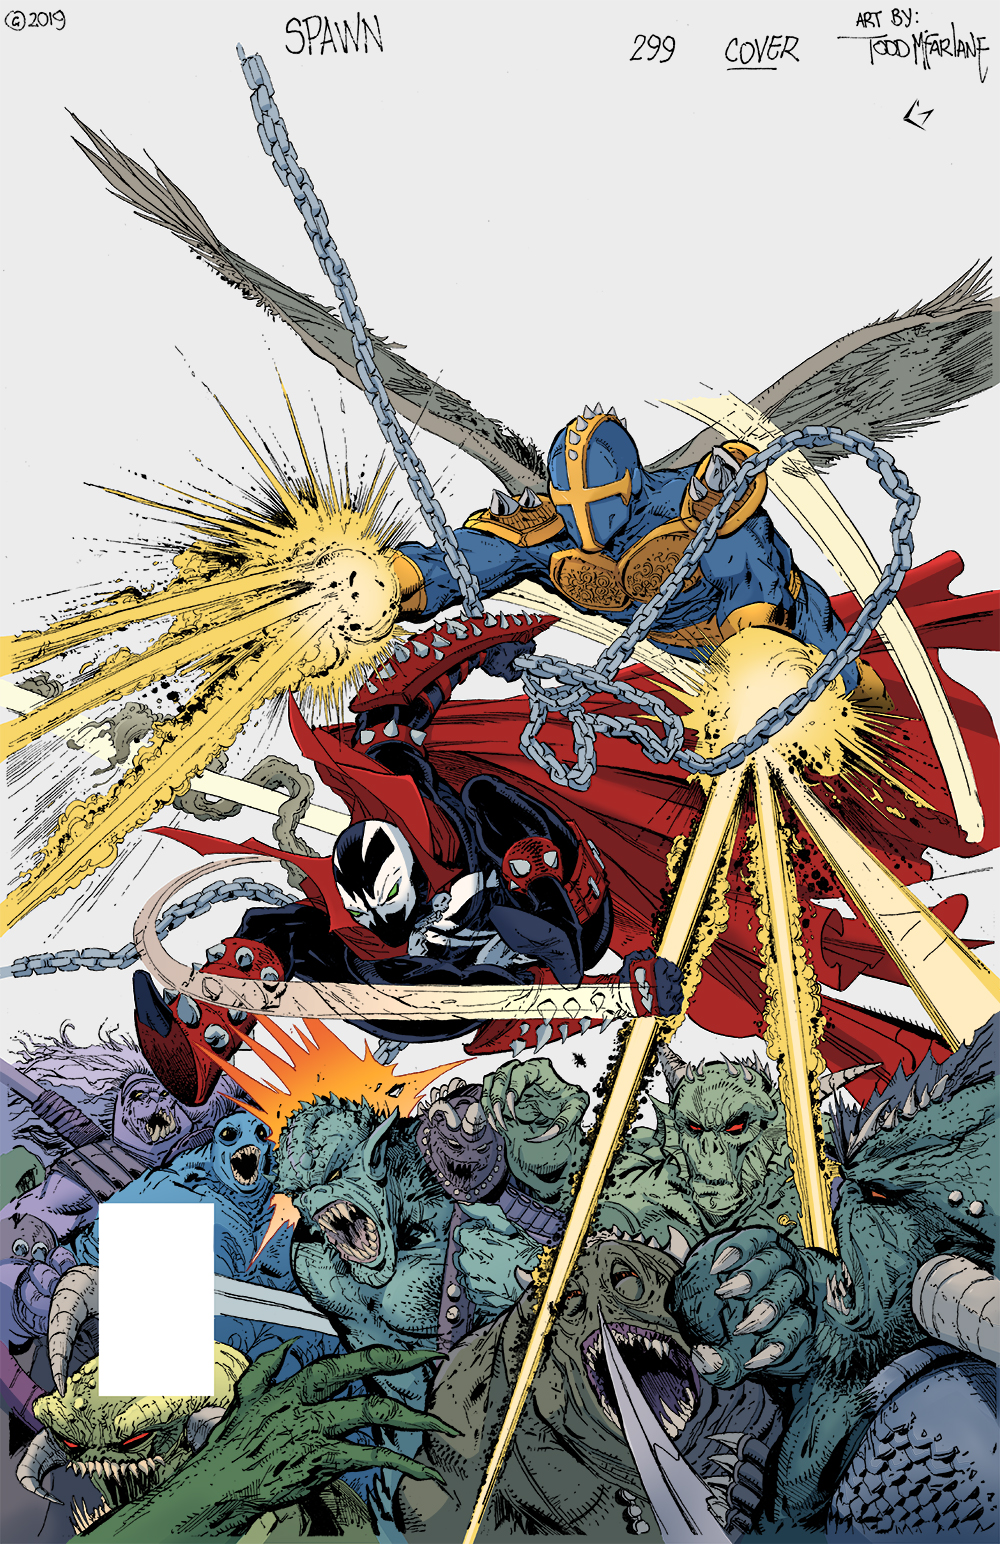 Spawn Cover 299_Colours_working copy